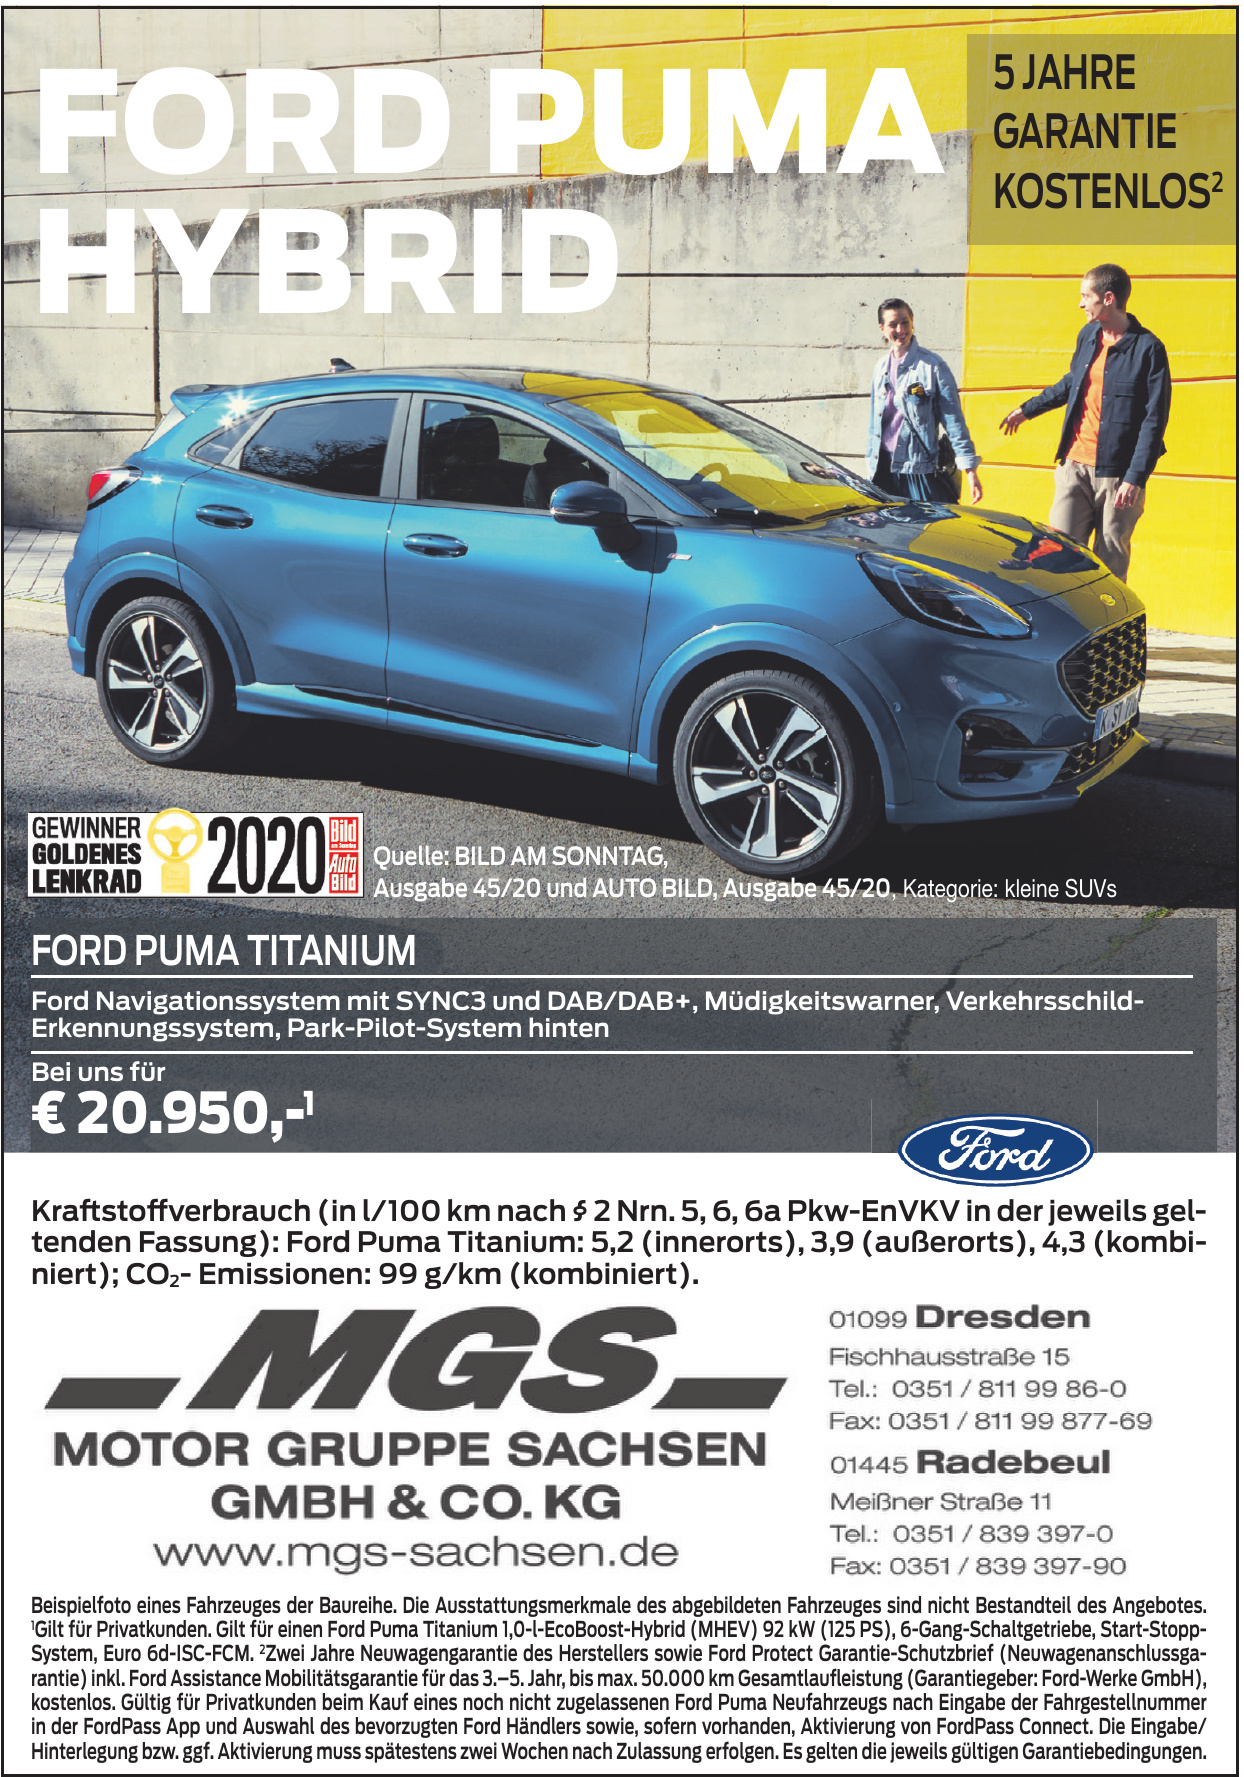 MGS Motor Gruppe Sachsen GmbH & Co. KG